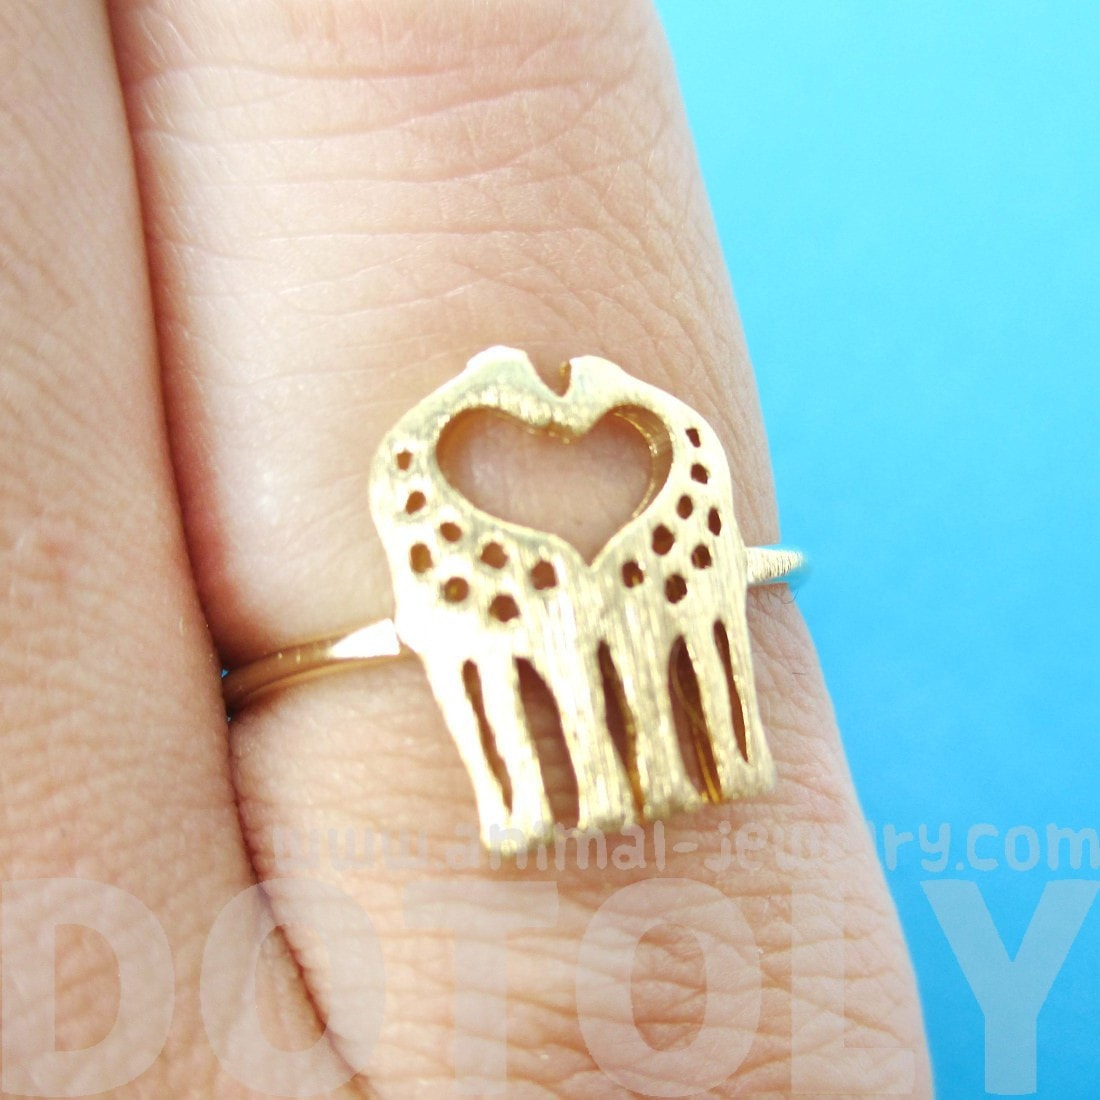 Kissing Giraffe Silhouette Shaped Animal Ring in Gold | US Size 6